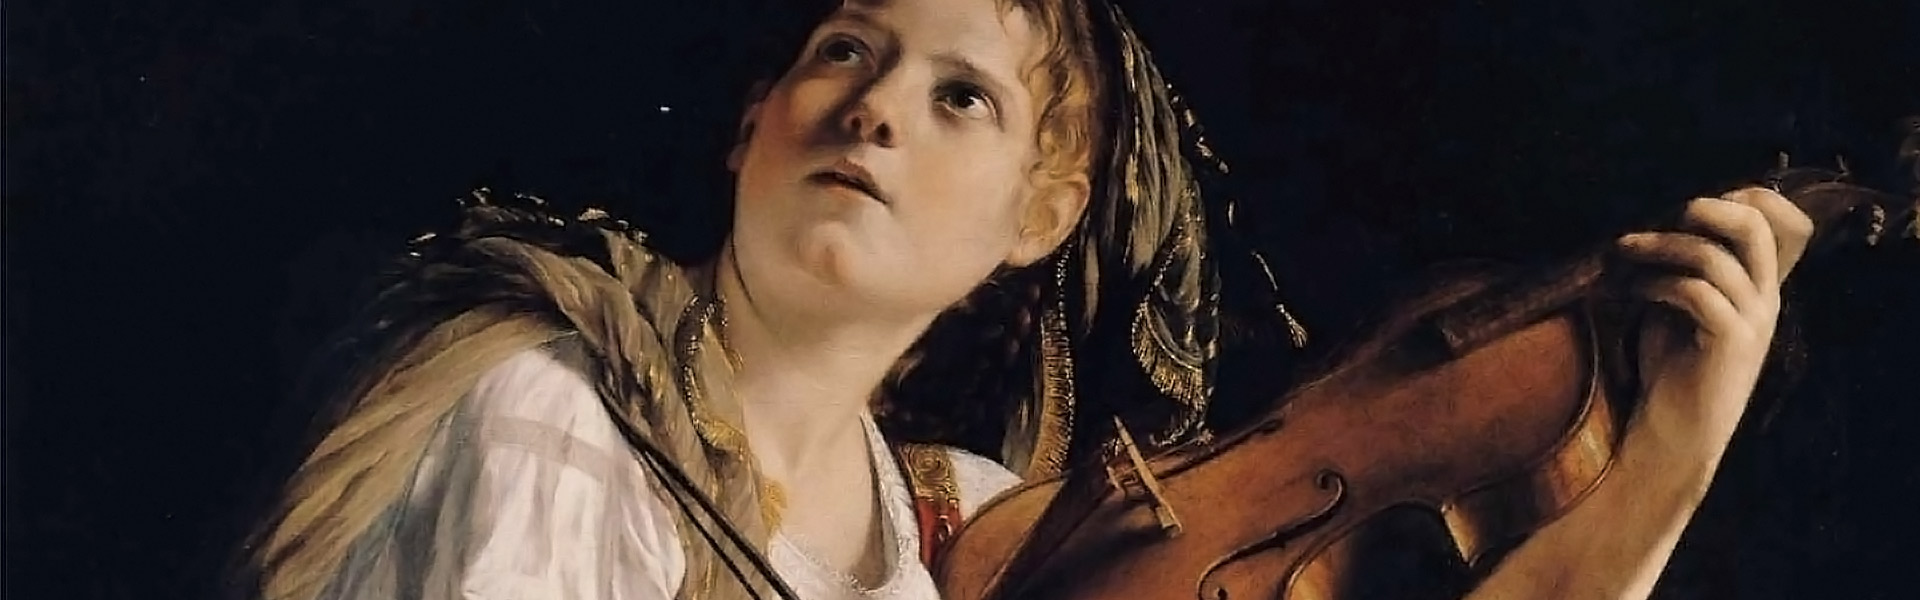 Woman-and-violin